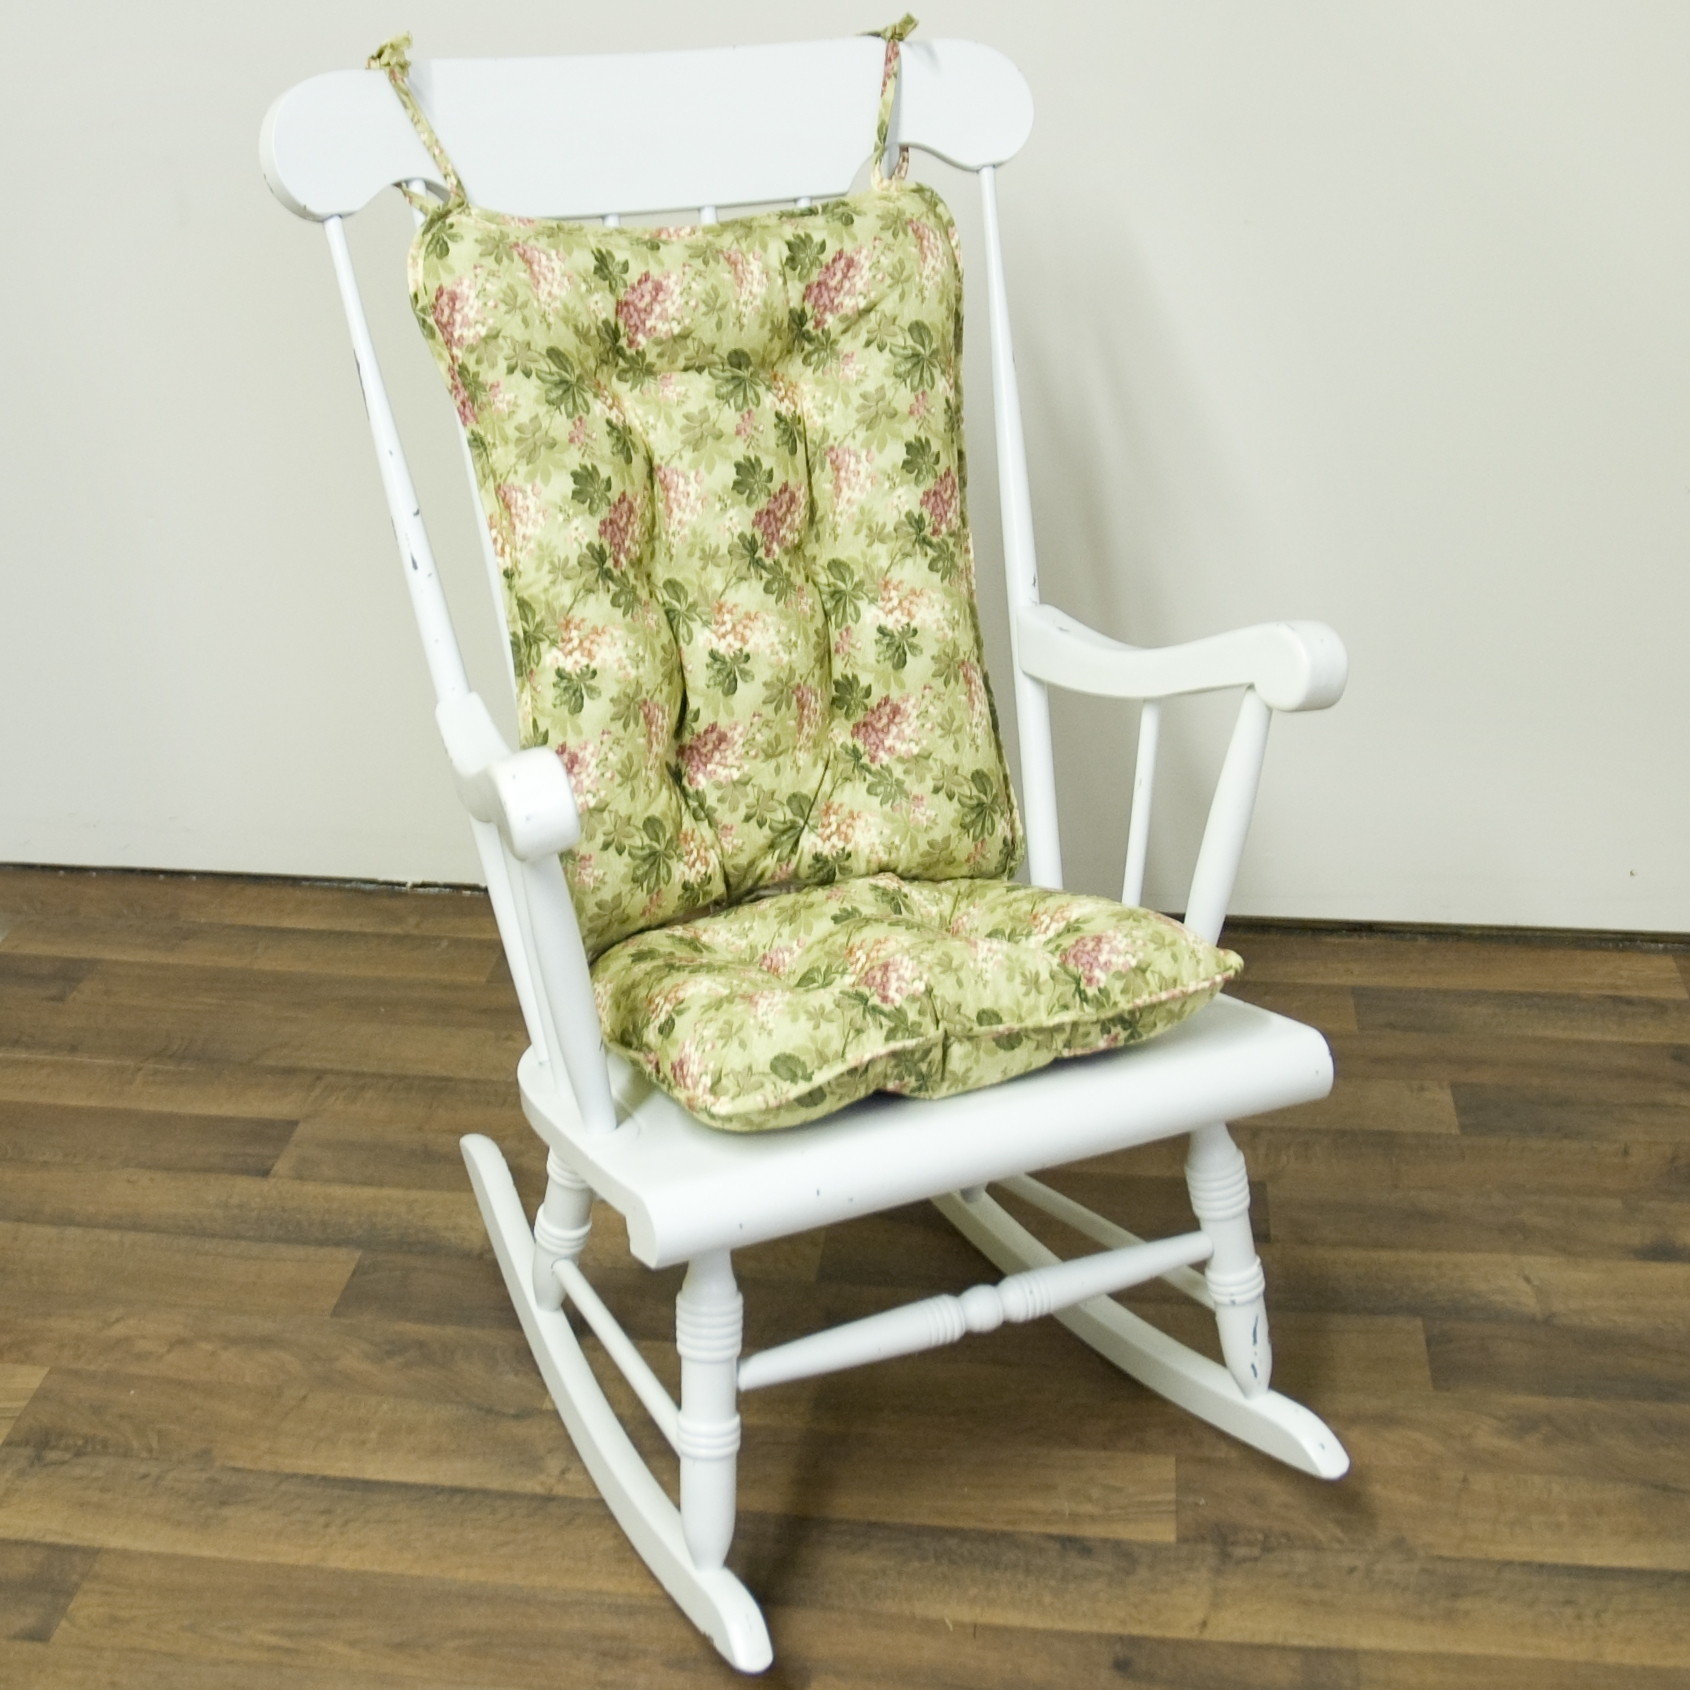 Outdoor Rocking Chair Cushions Flower : Beautiful Outdoor Rocking Throughout Most Up To Date Rocking Chair Cushions For Outdoor (View 13 of 20)